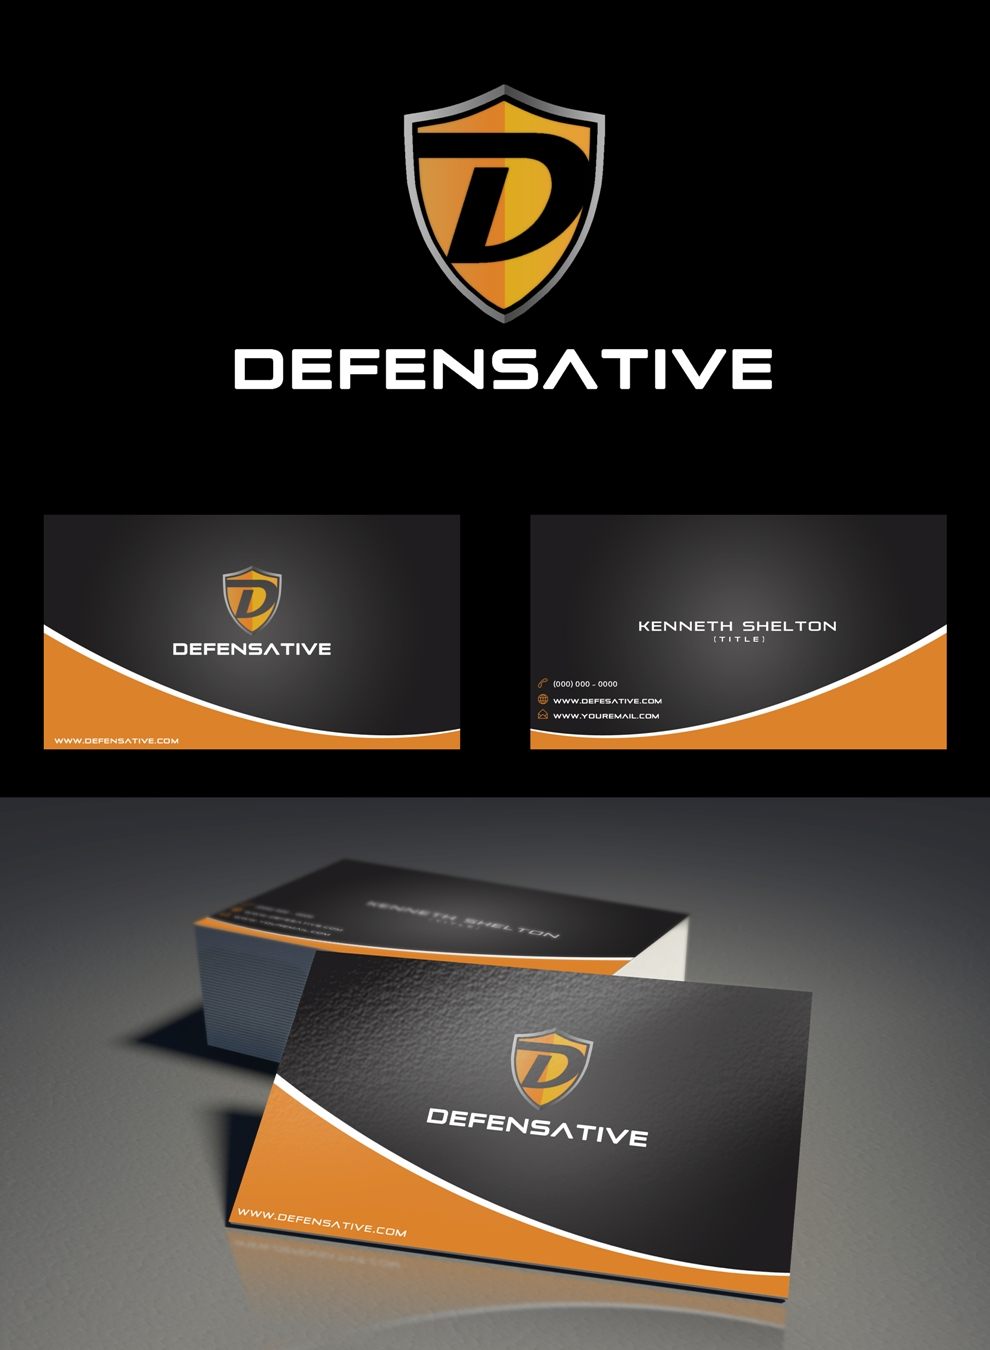 Custom Design by Juan_Kata - Entry No. 30 in the Custom Design Contest Custom Design Business Cards+Logo+Stationary for Defensative.